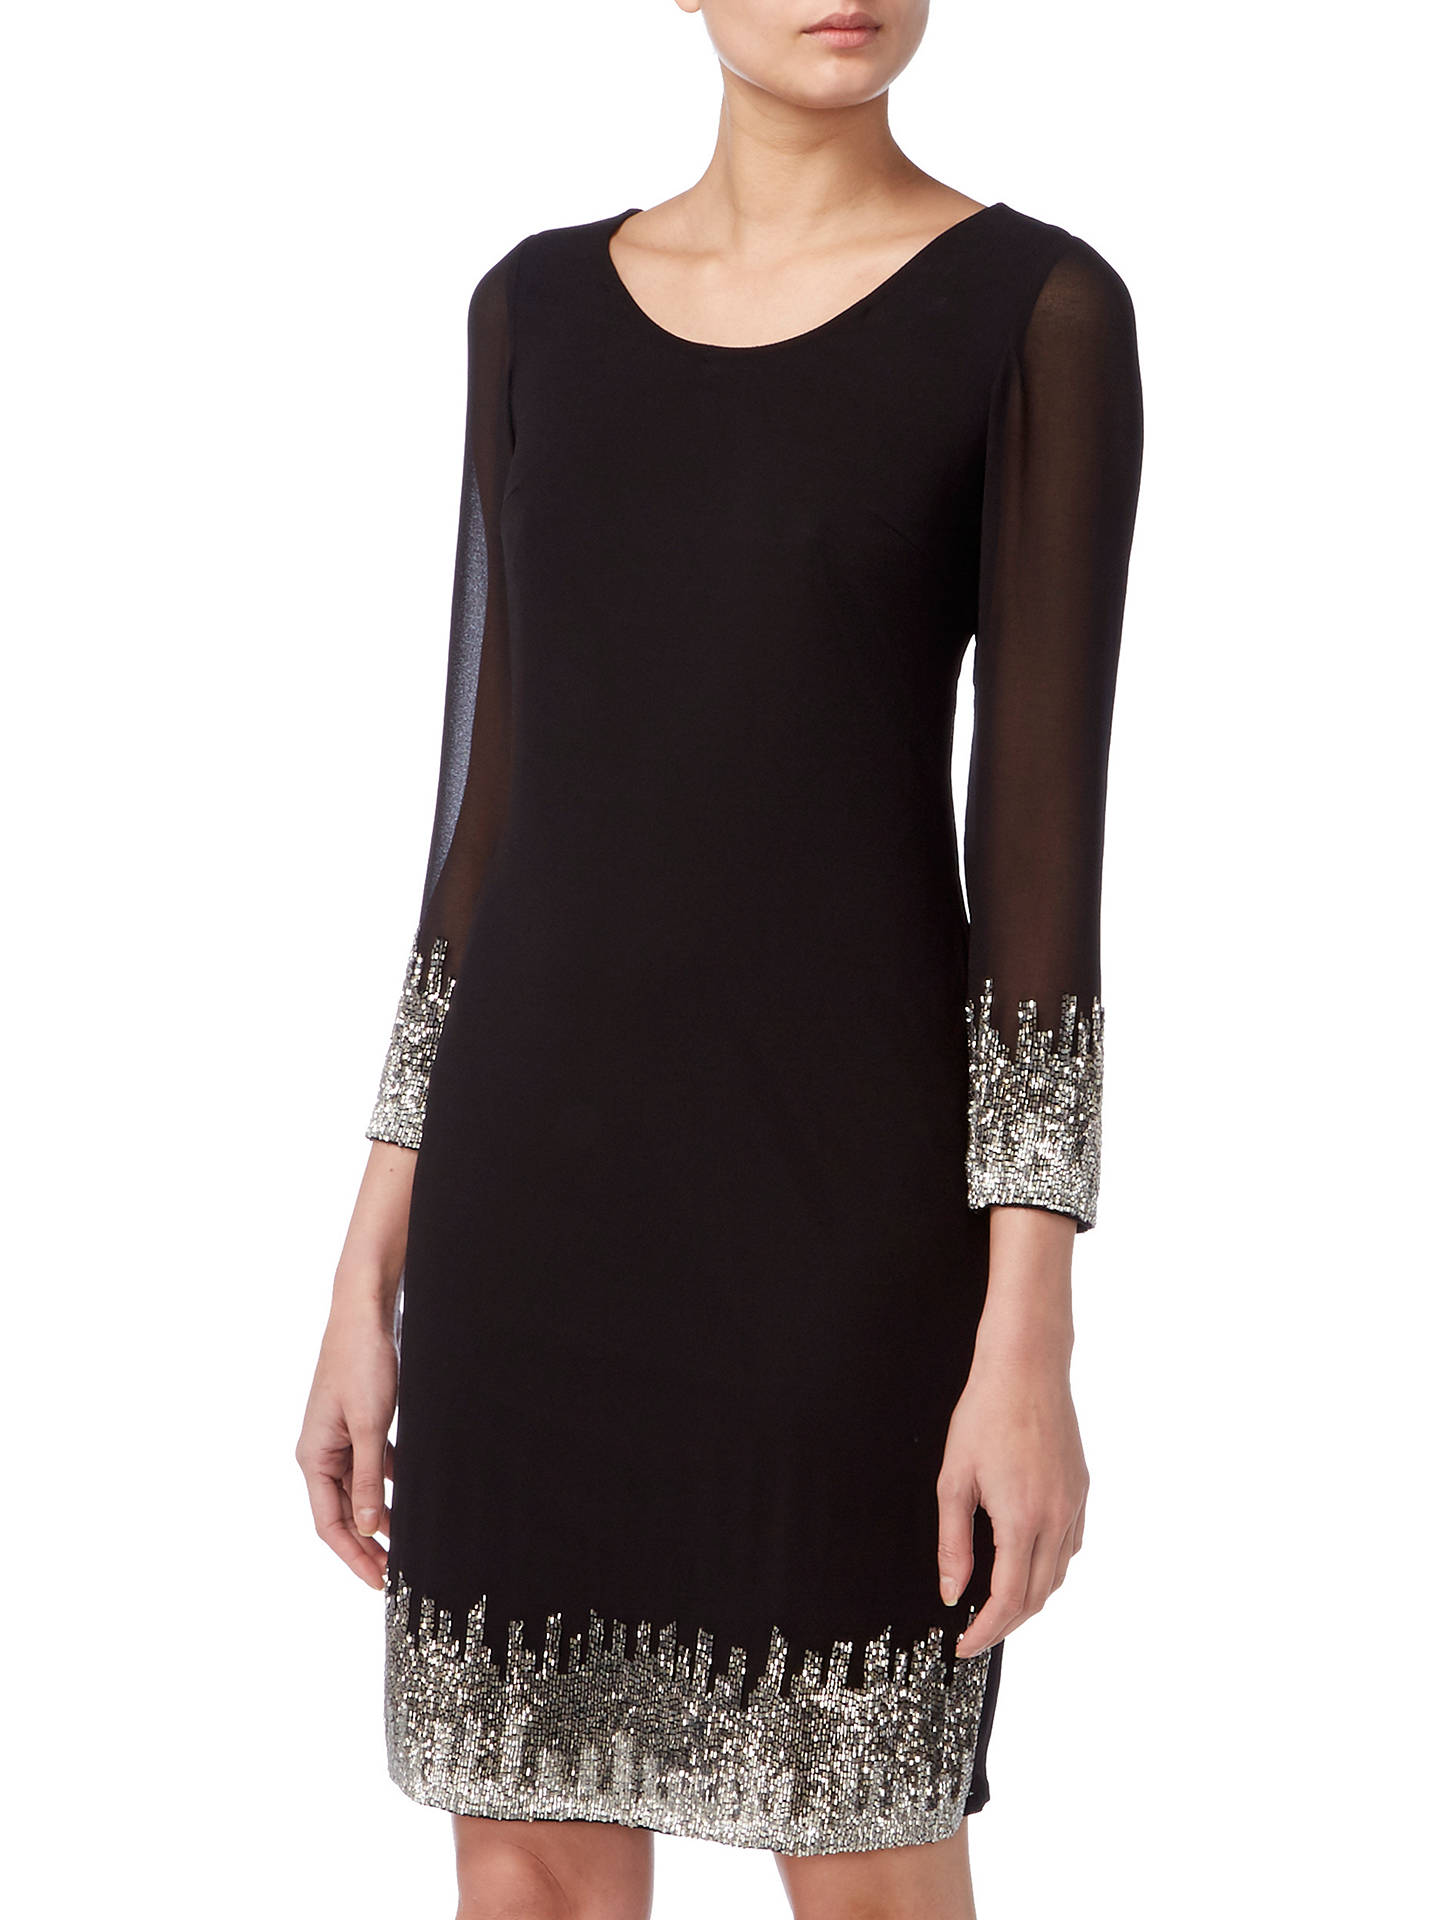 Buy Raishma Vertical Embellished Tunic Dress, Black, 8 Online at johnlewis.com